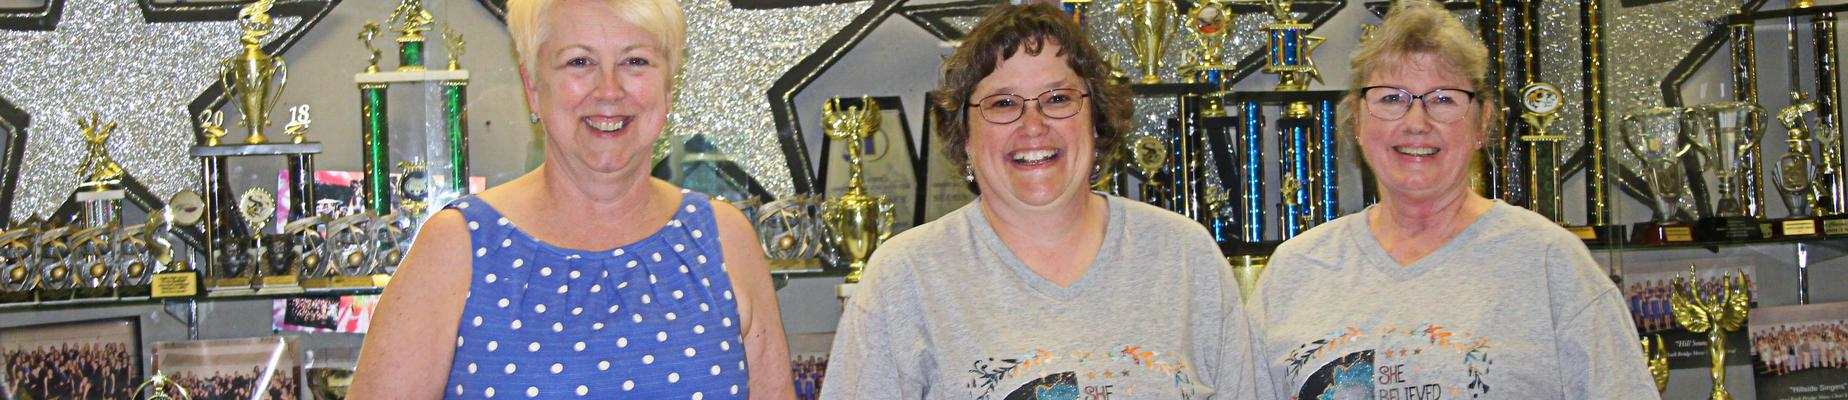 Retirees Honored at Sweet Rewards